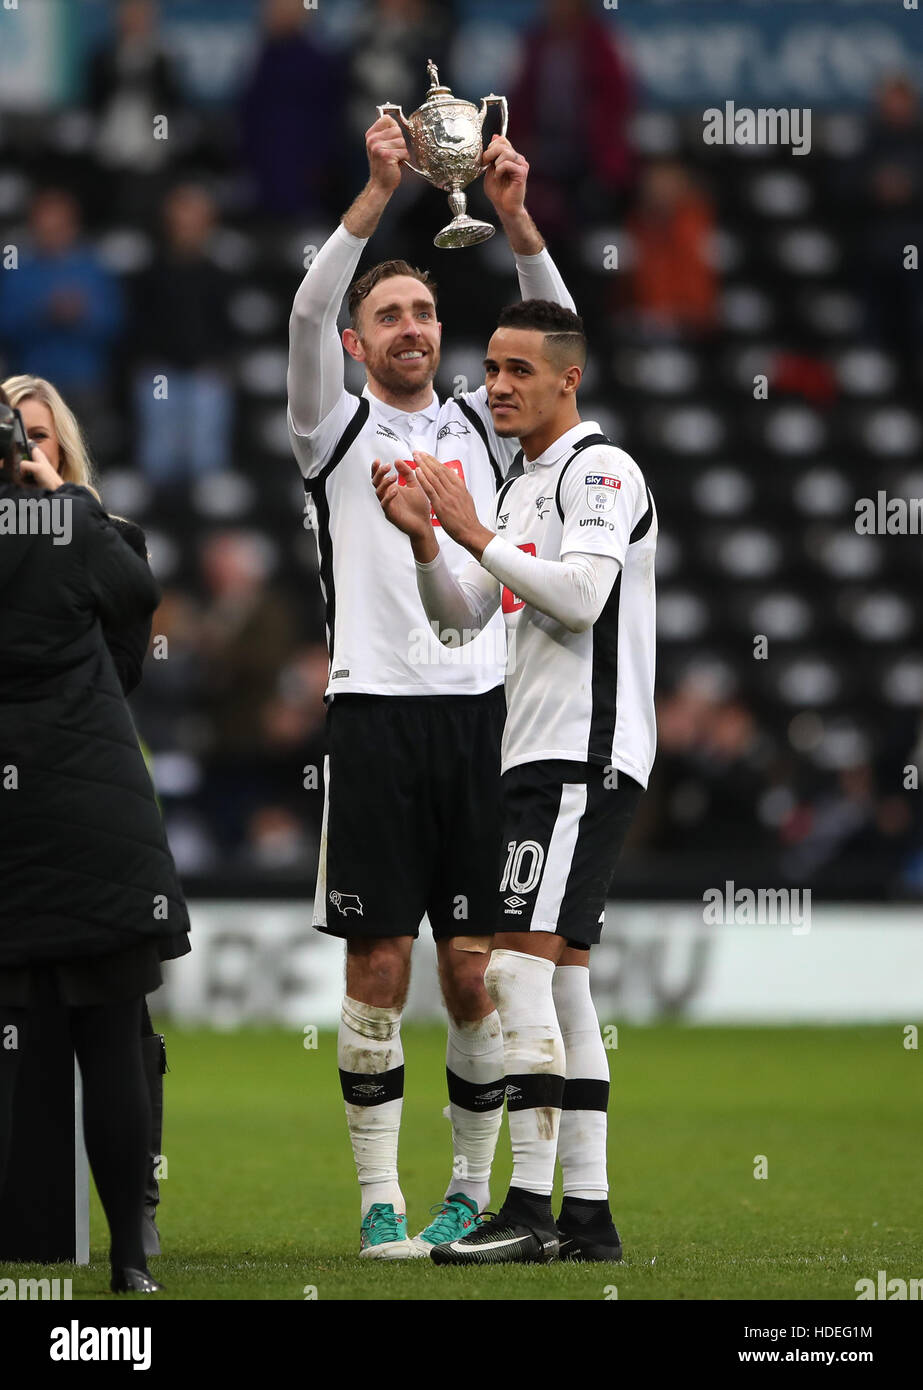 Derby County's Richard Keogh lifts the Brian Clough Trophy with Thomas Ince after the Sky Bet Championship match - Stock Image